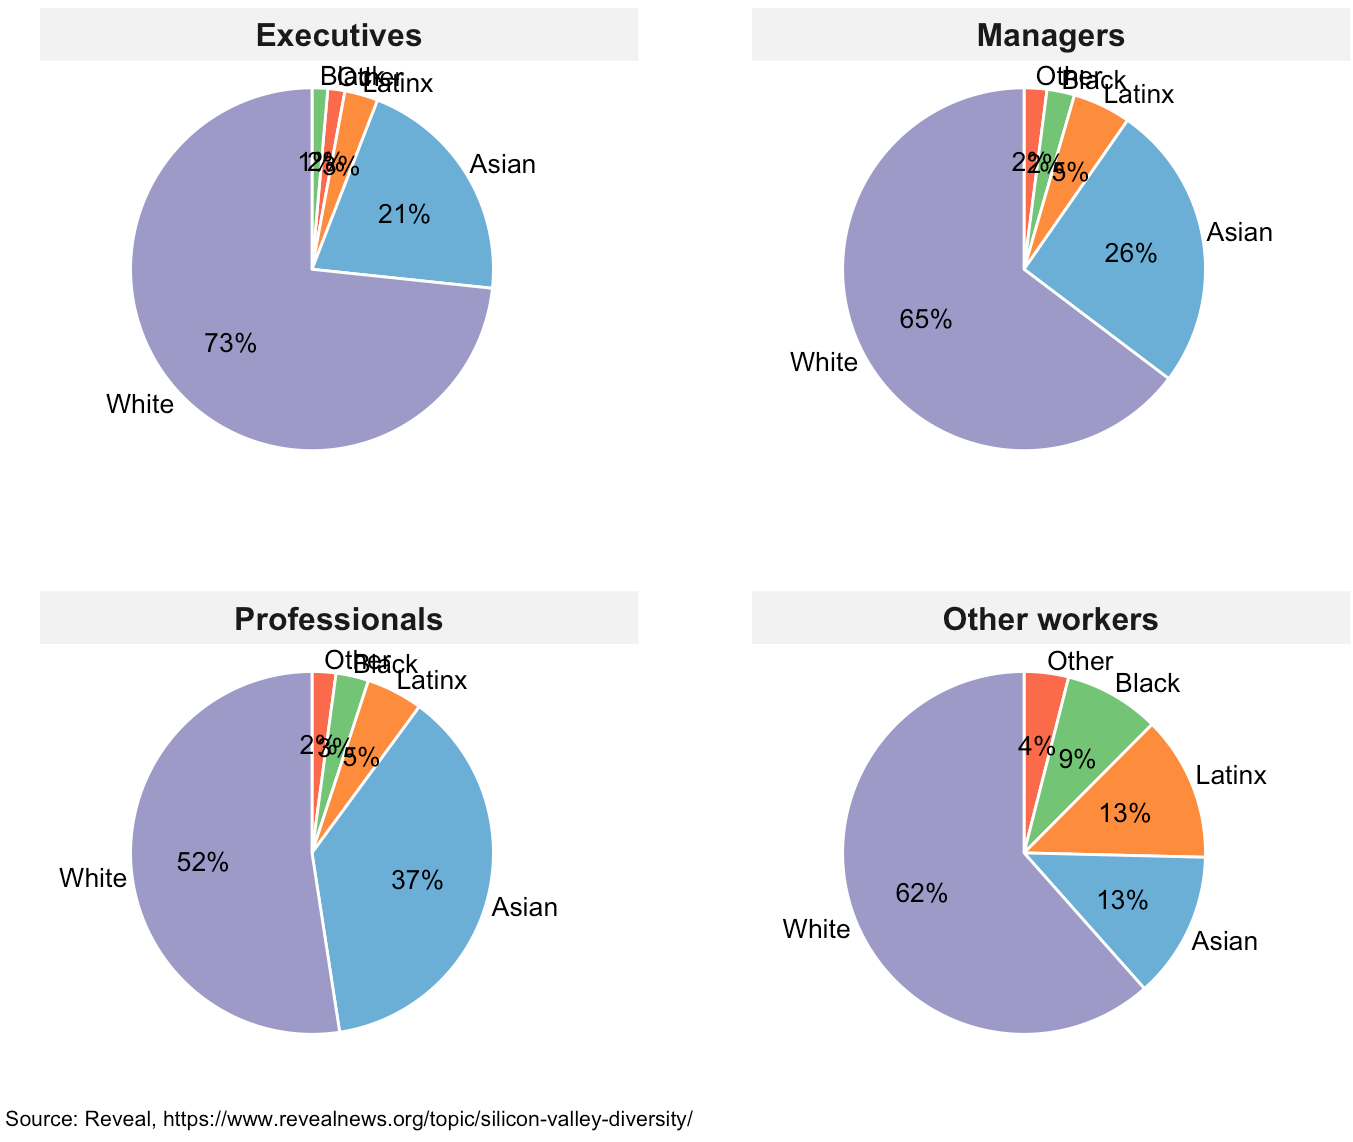 Pie chart panels showing ethnicity/race of employees in Silicon Valley companies by job category